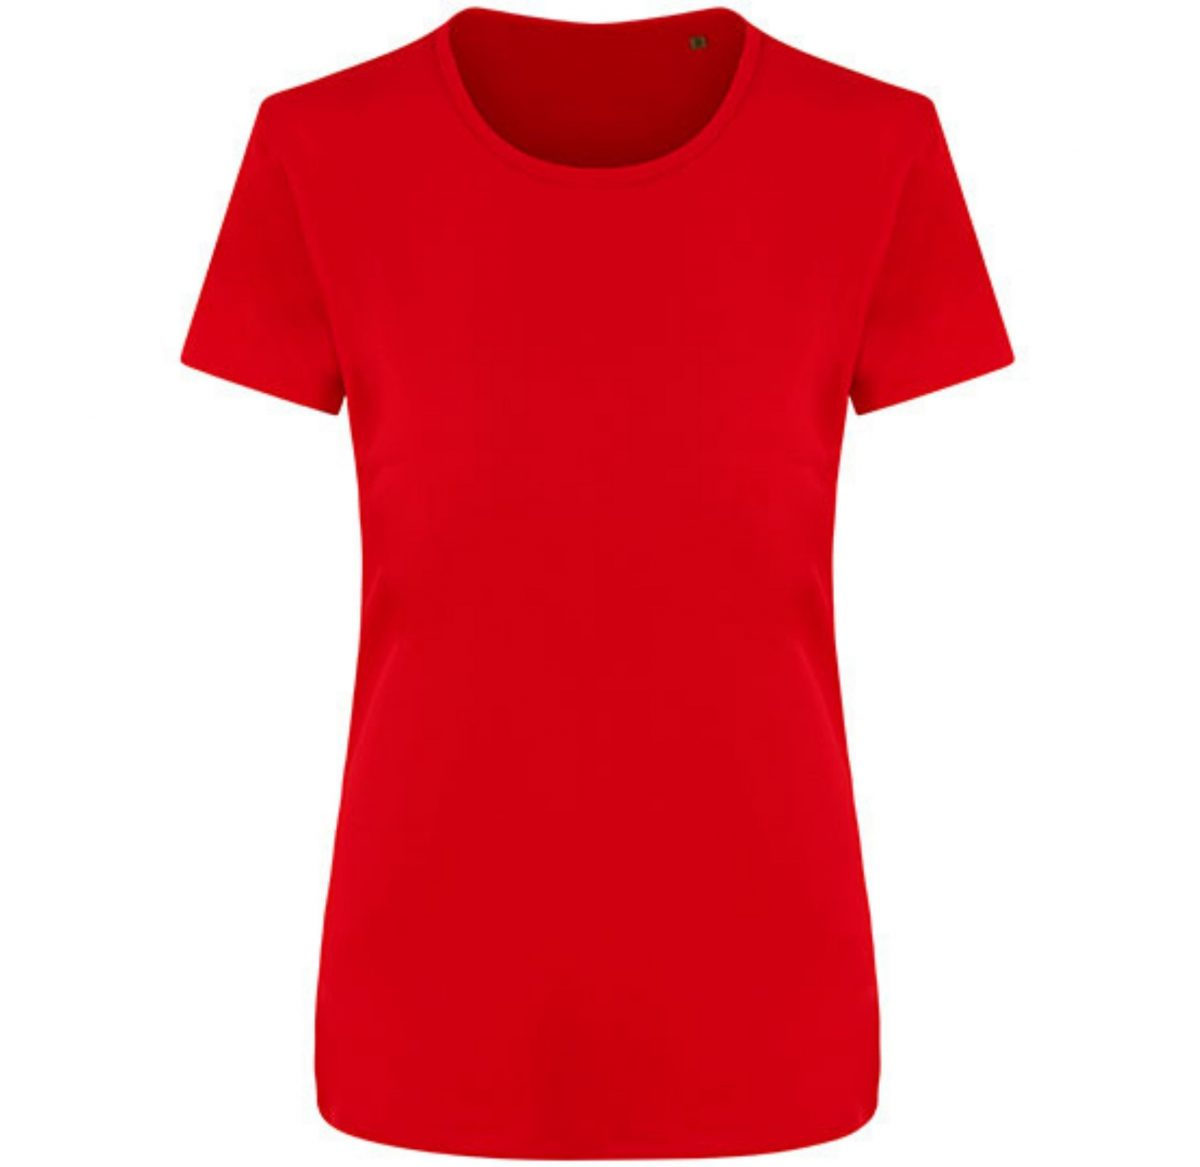 Tee-Shirt Femme Performance – Rouge